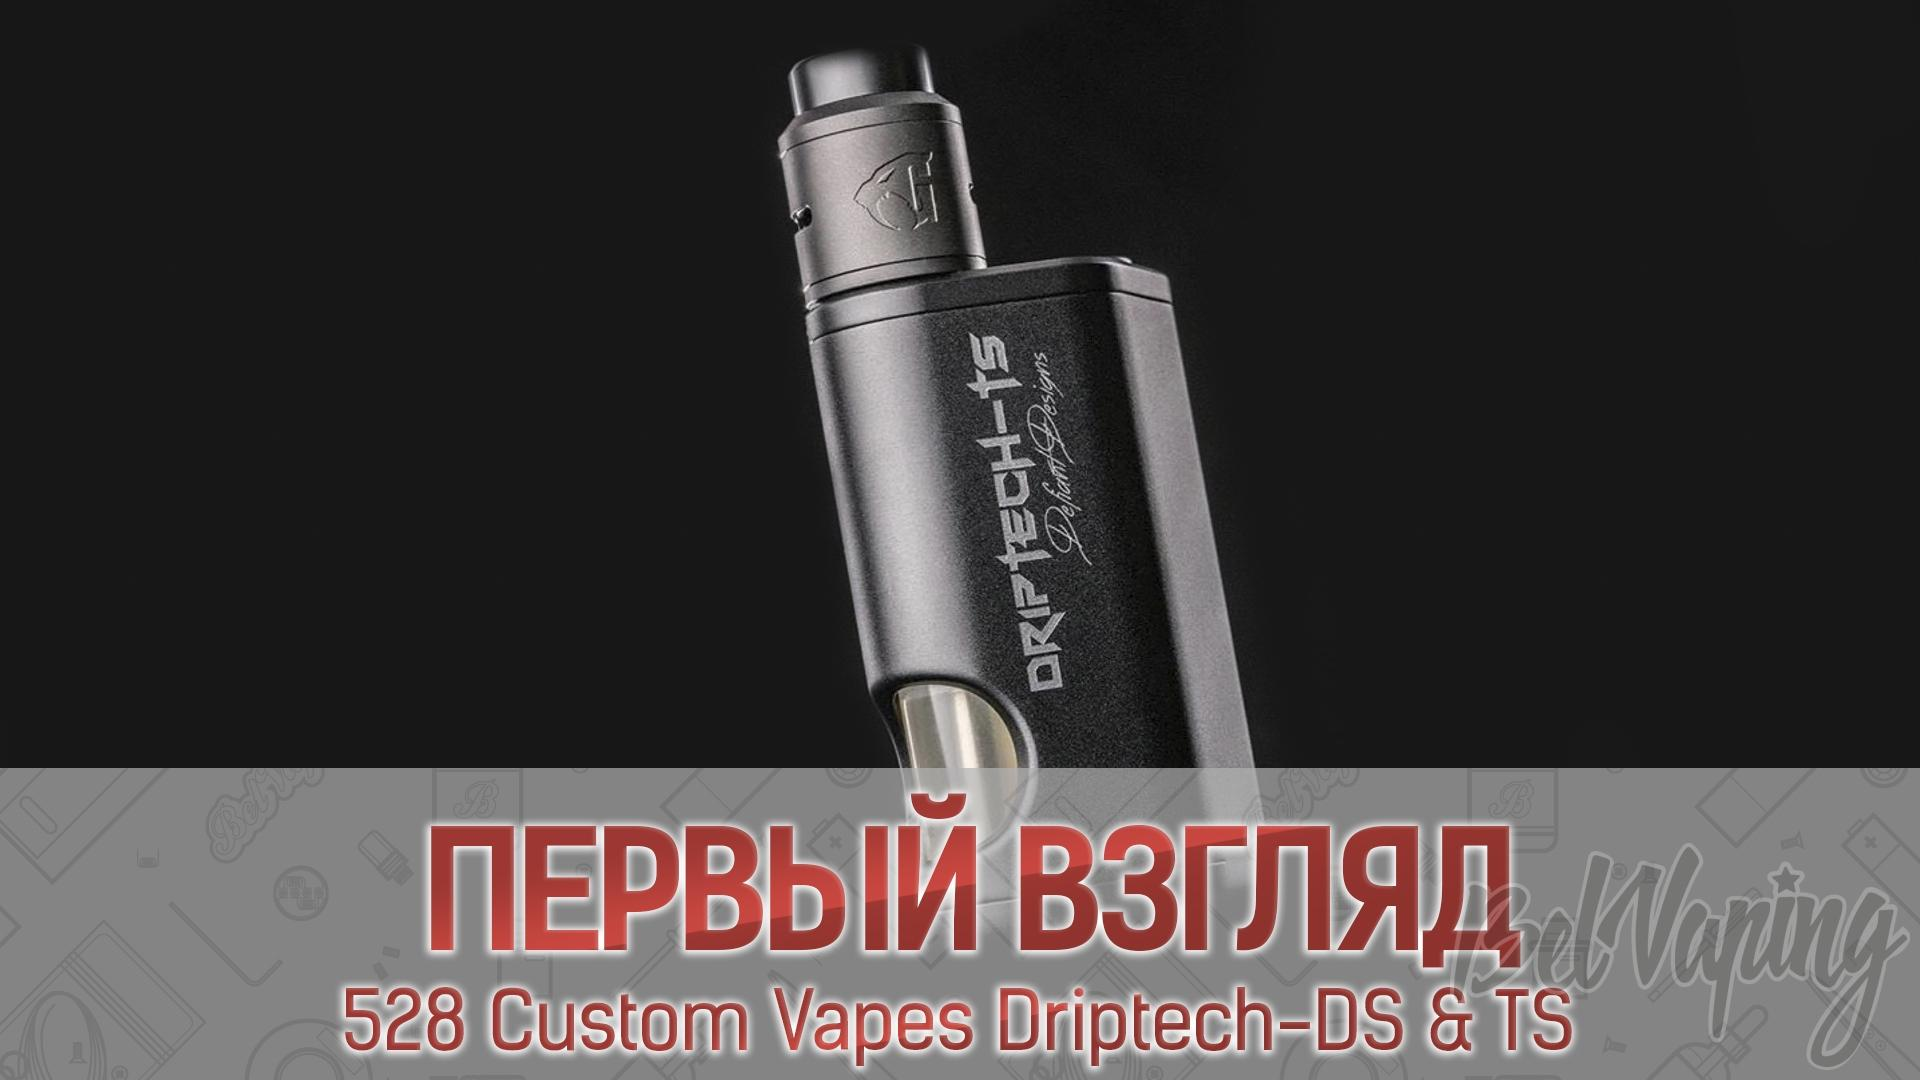 528 Custom Vapes Driptech-DS & TS. Первый взгляд